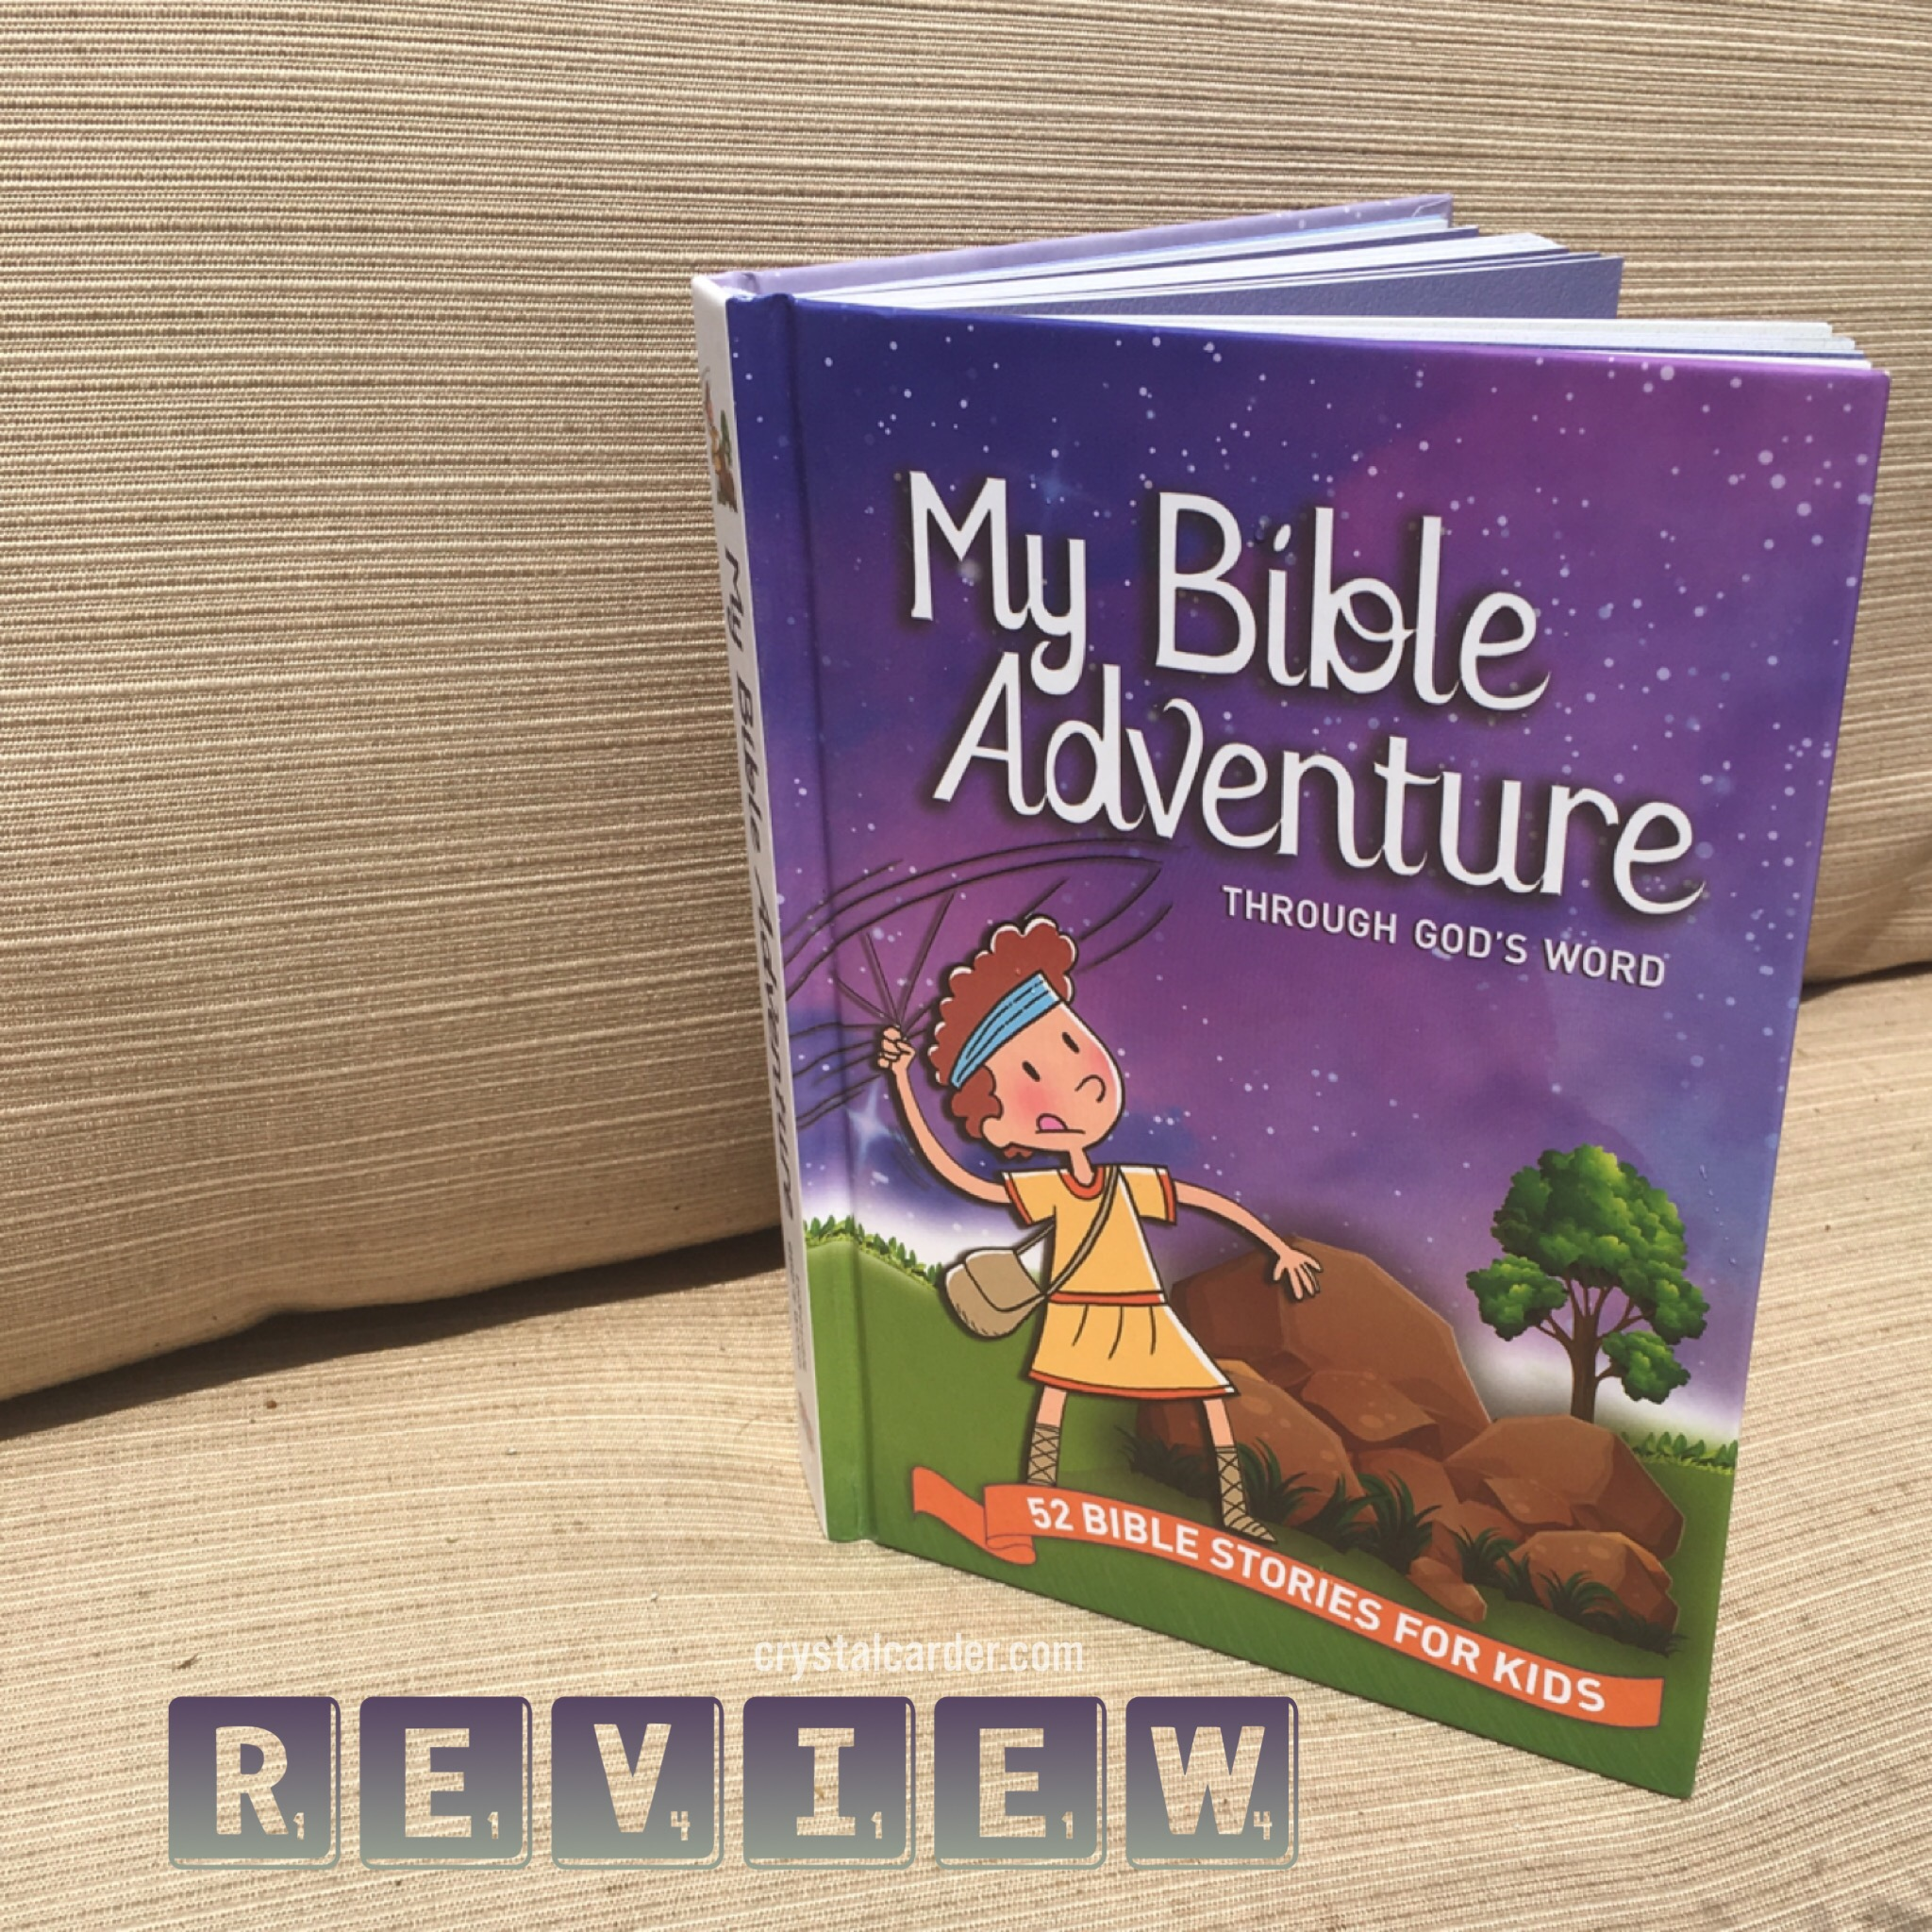 My Bible Adventure Through God's Word 52 Bible Stories for